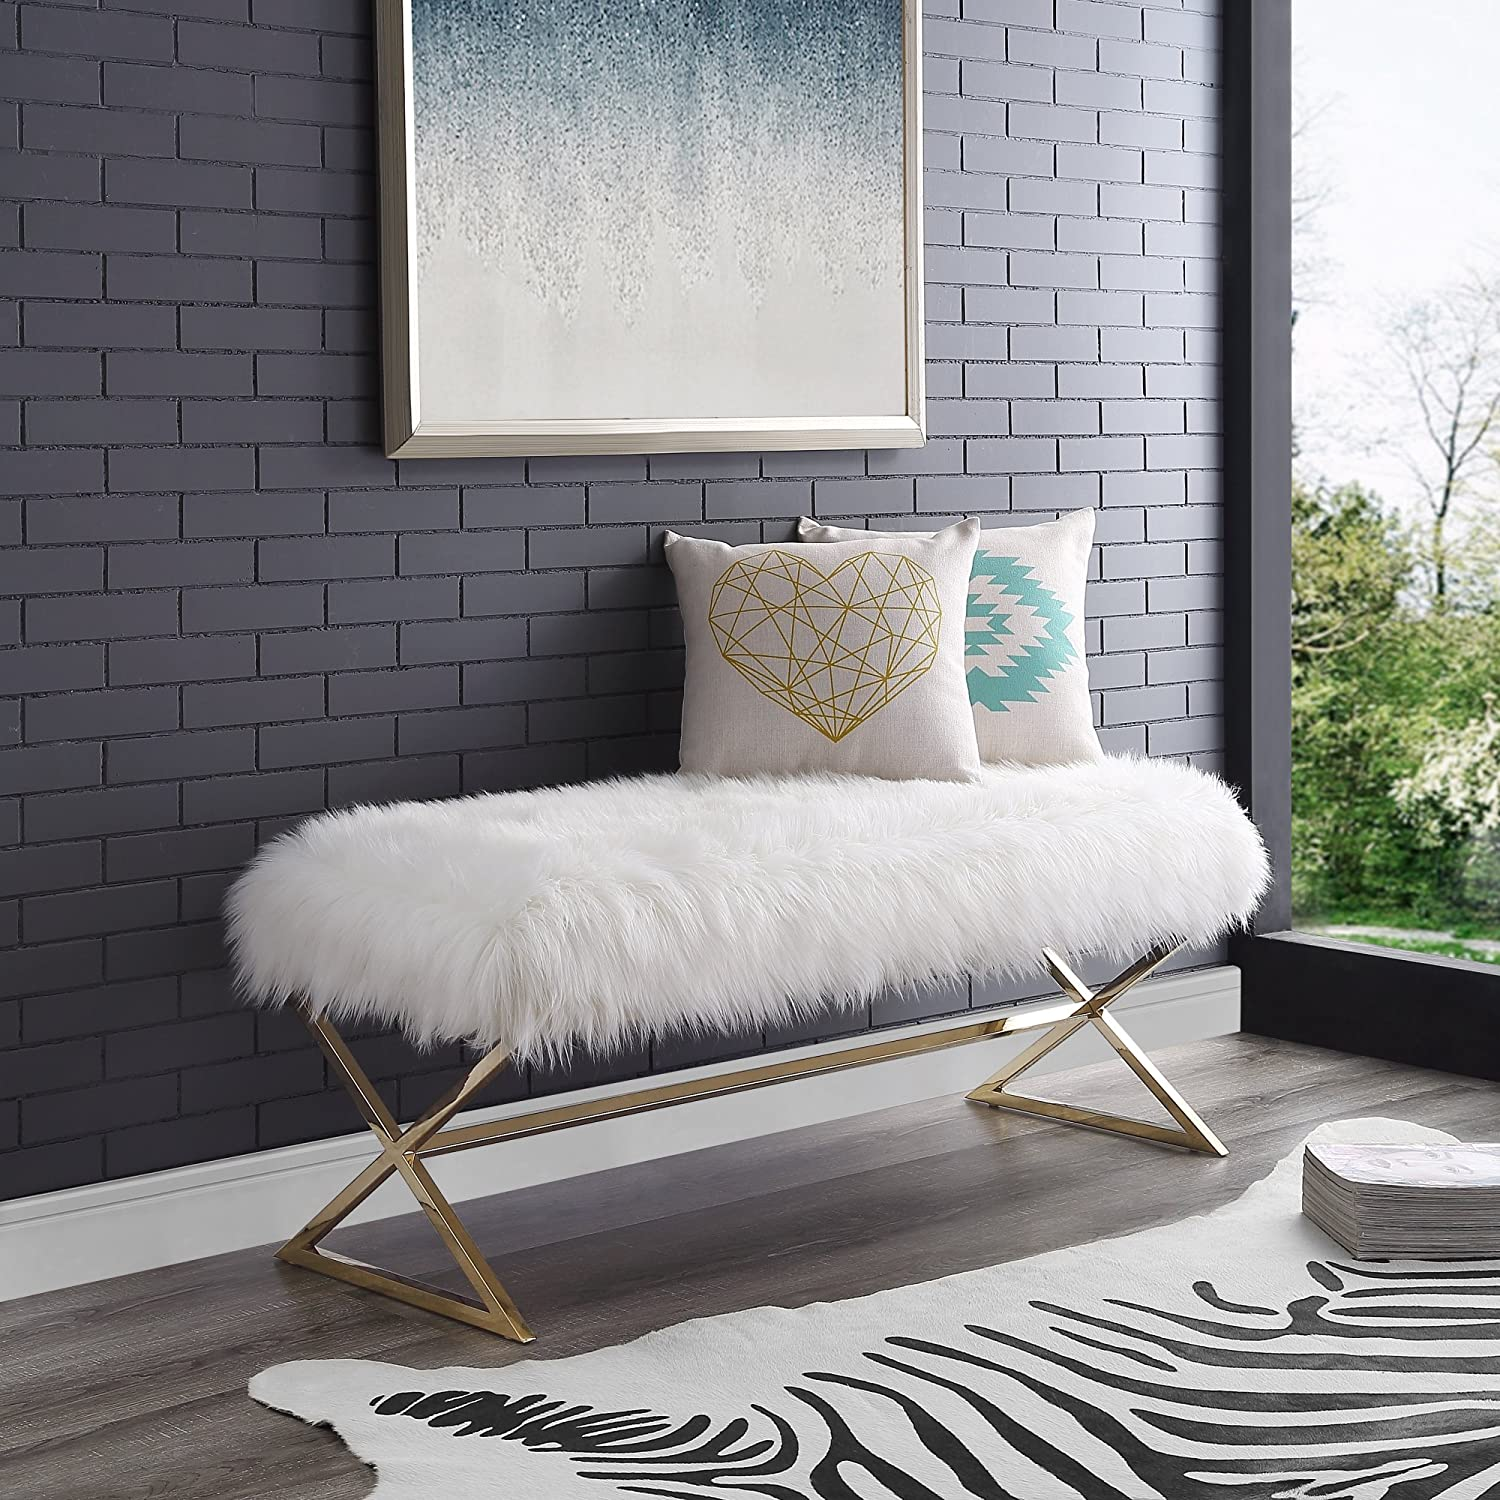 Aurora Ranking TOP20 Ranking TOP19 White Fur Upholstered Bench - Legs Steel Gold Stainless